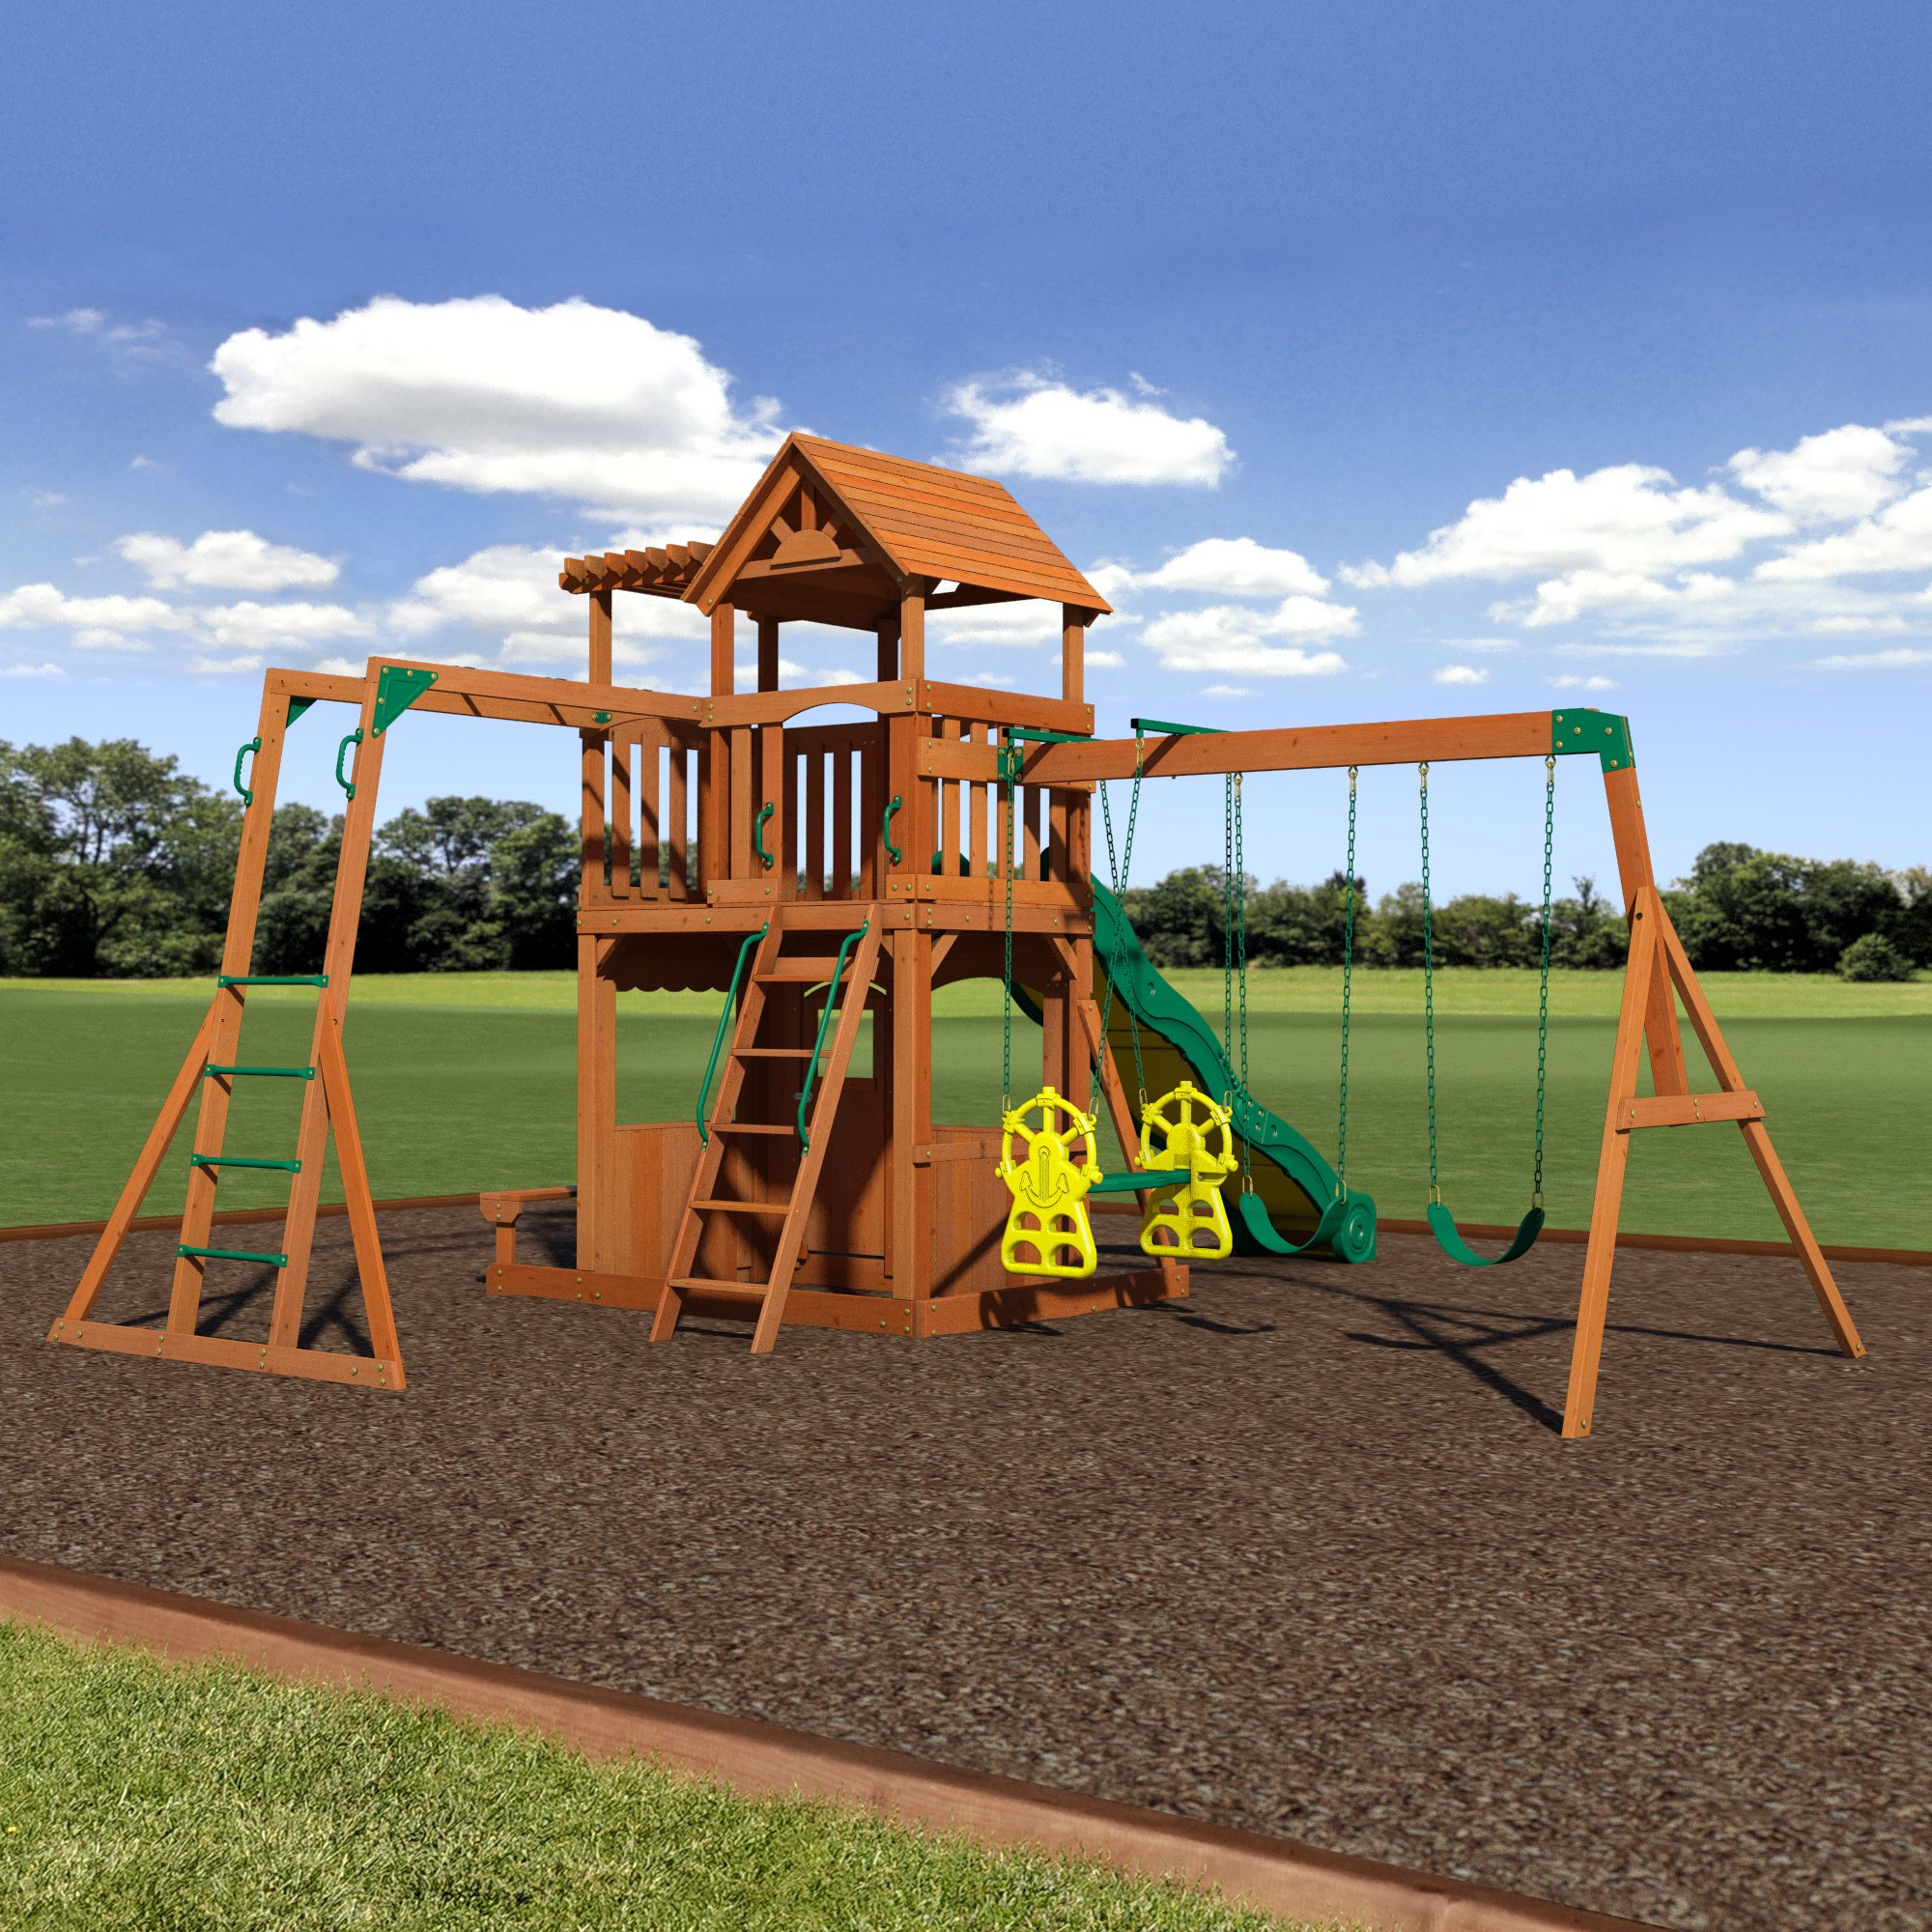 Backyard Discovery Thunder Ridge All Cedar Wood Playset Swing Set by Backyard Discovery (Image #4)